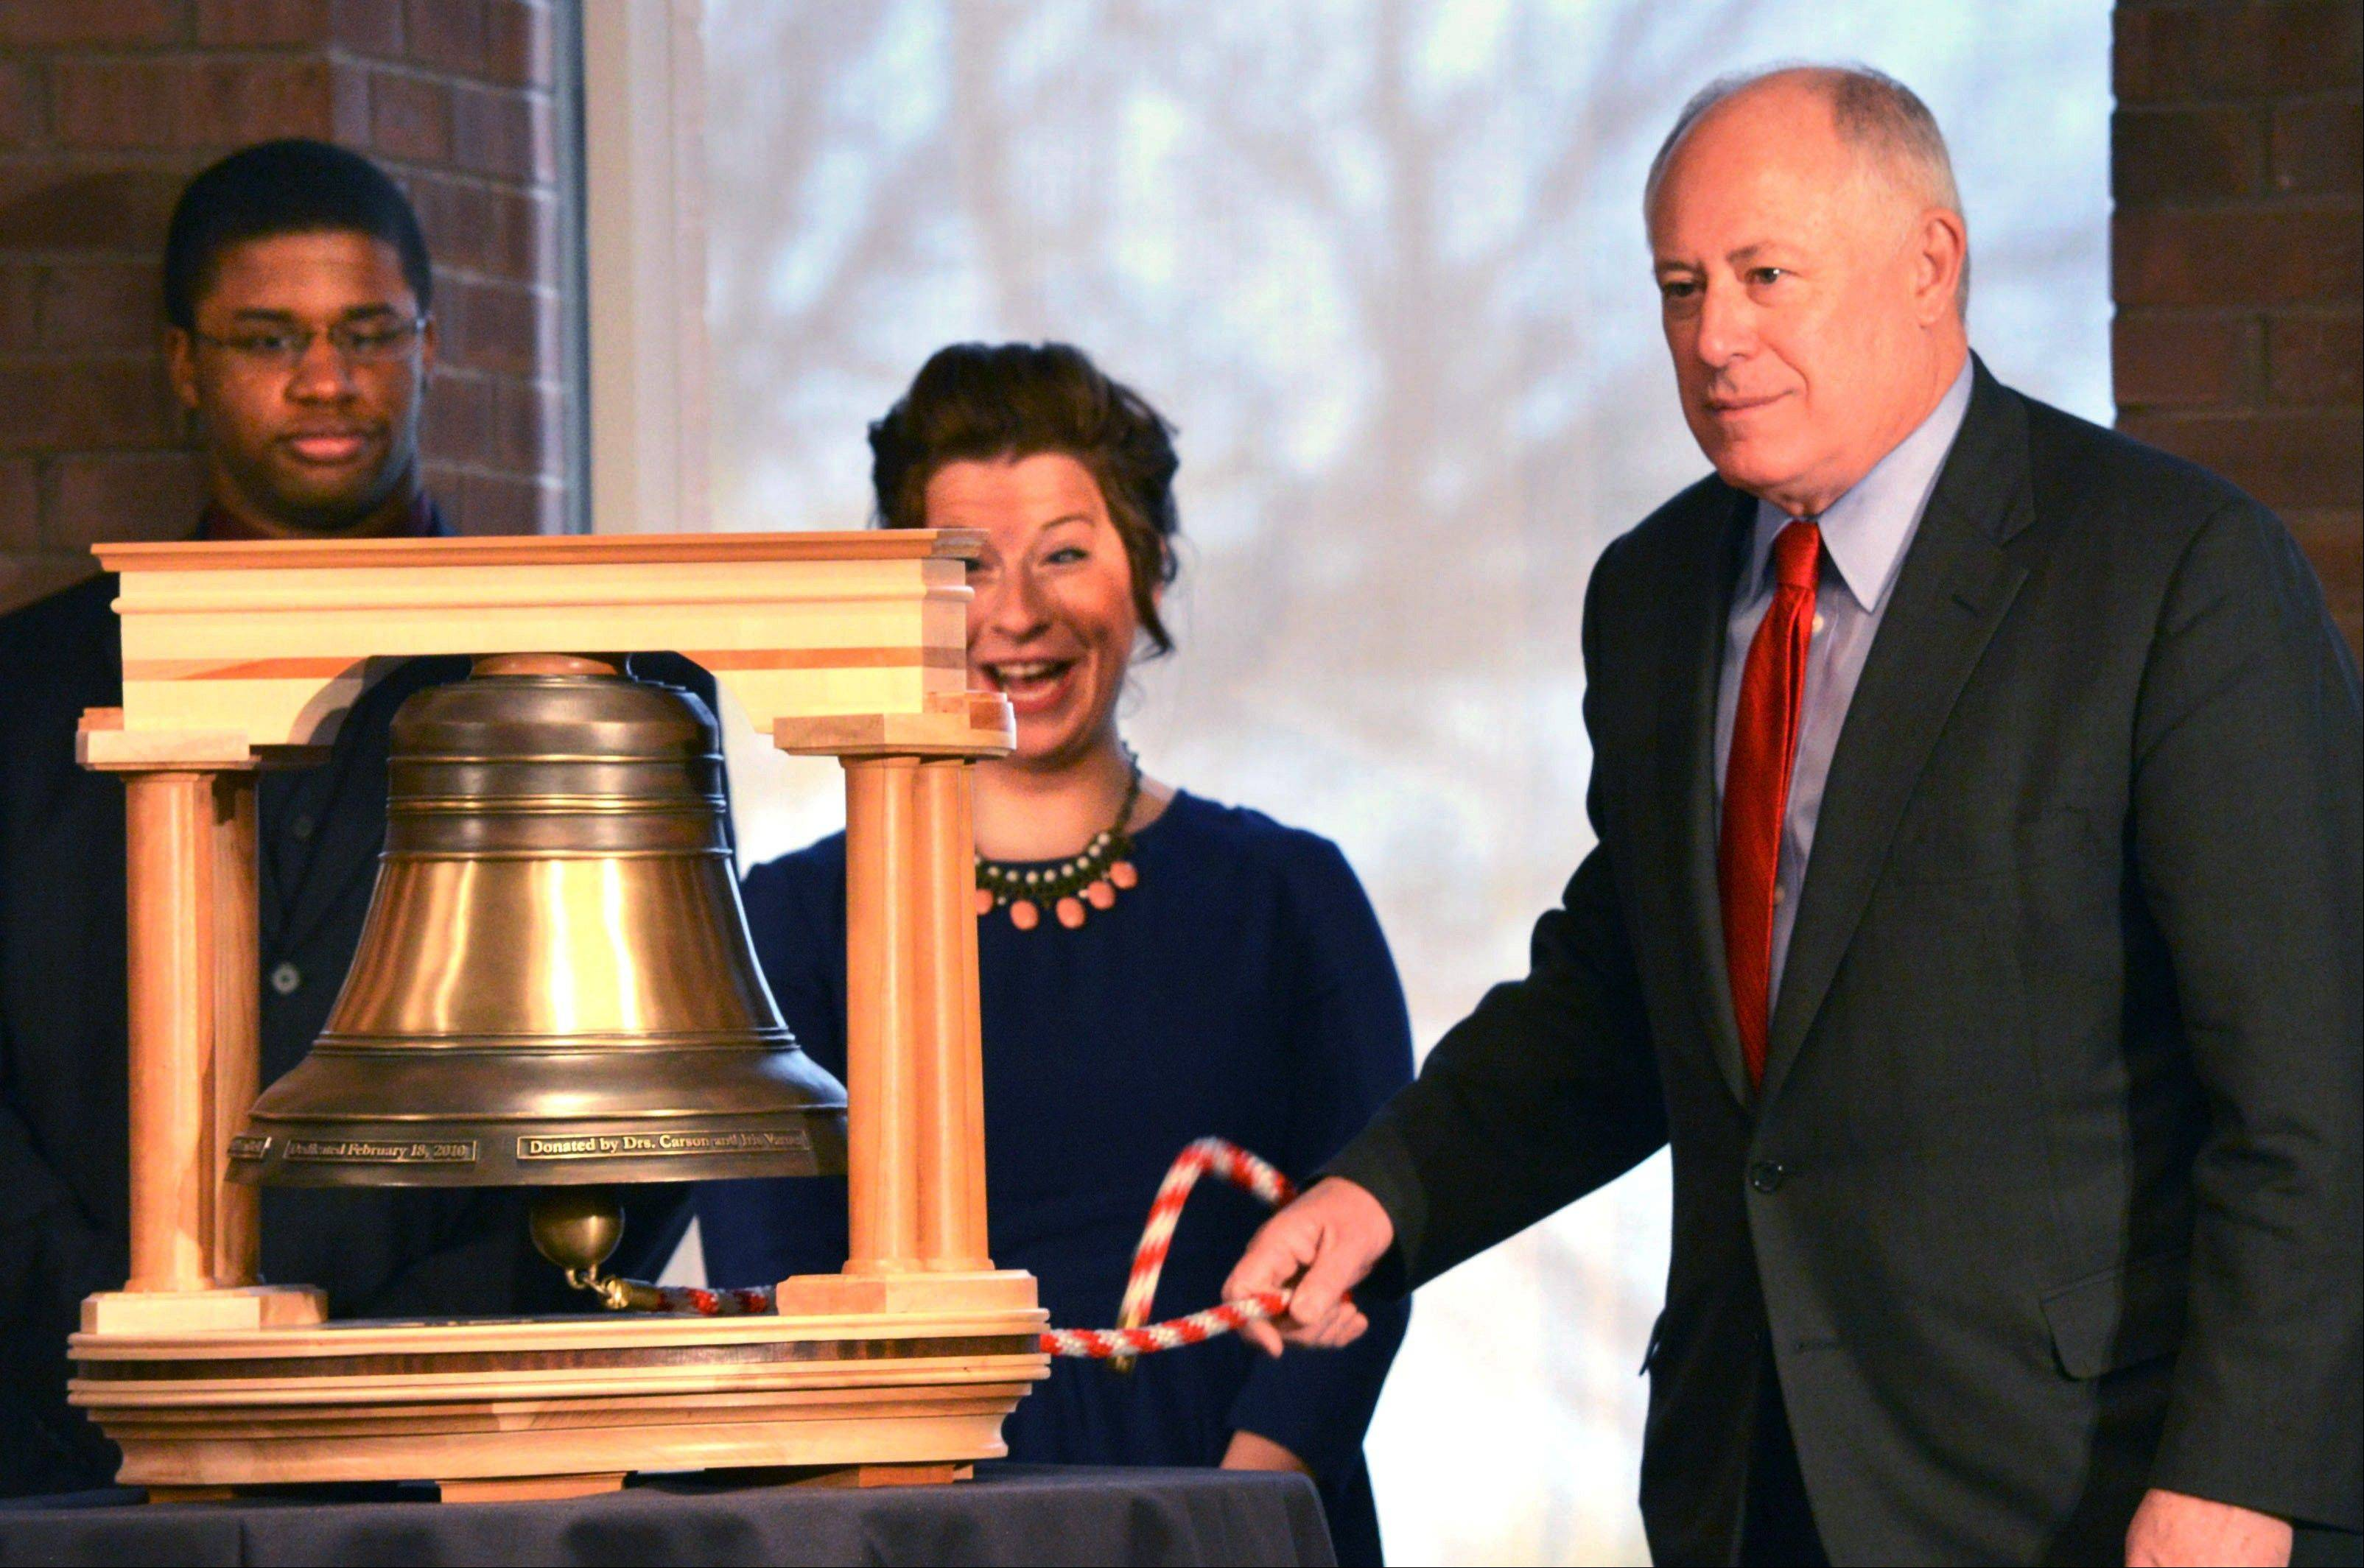 Gov. Pat Quinn rings the replica Old Main Bell at Illinois State University in Normal on Thursday after announcing a $54 million capital investment to build a new fine arts complex on the campus. Reacting during Founders Day 2013 are ISU seniors Abby Vombrack, center, a theater education major from Buffalo Grove, and Austin Robbins, an arts technology and fine arts major from Bolingbrook,